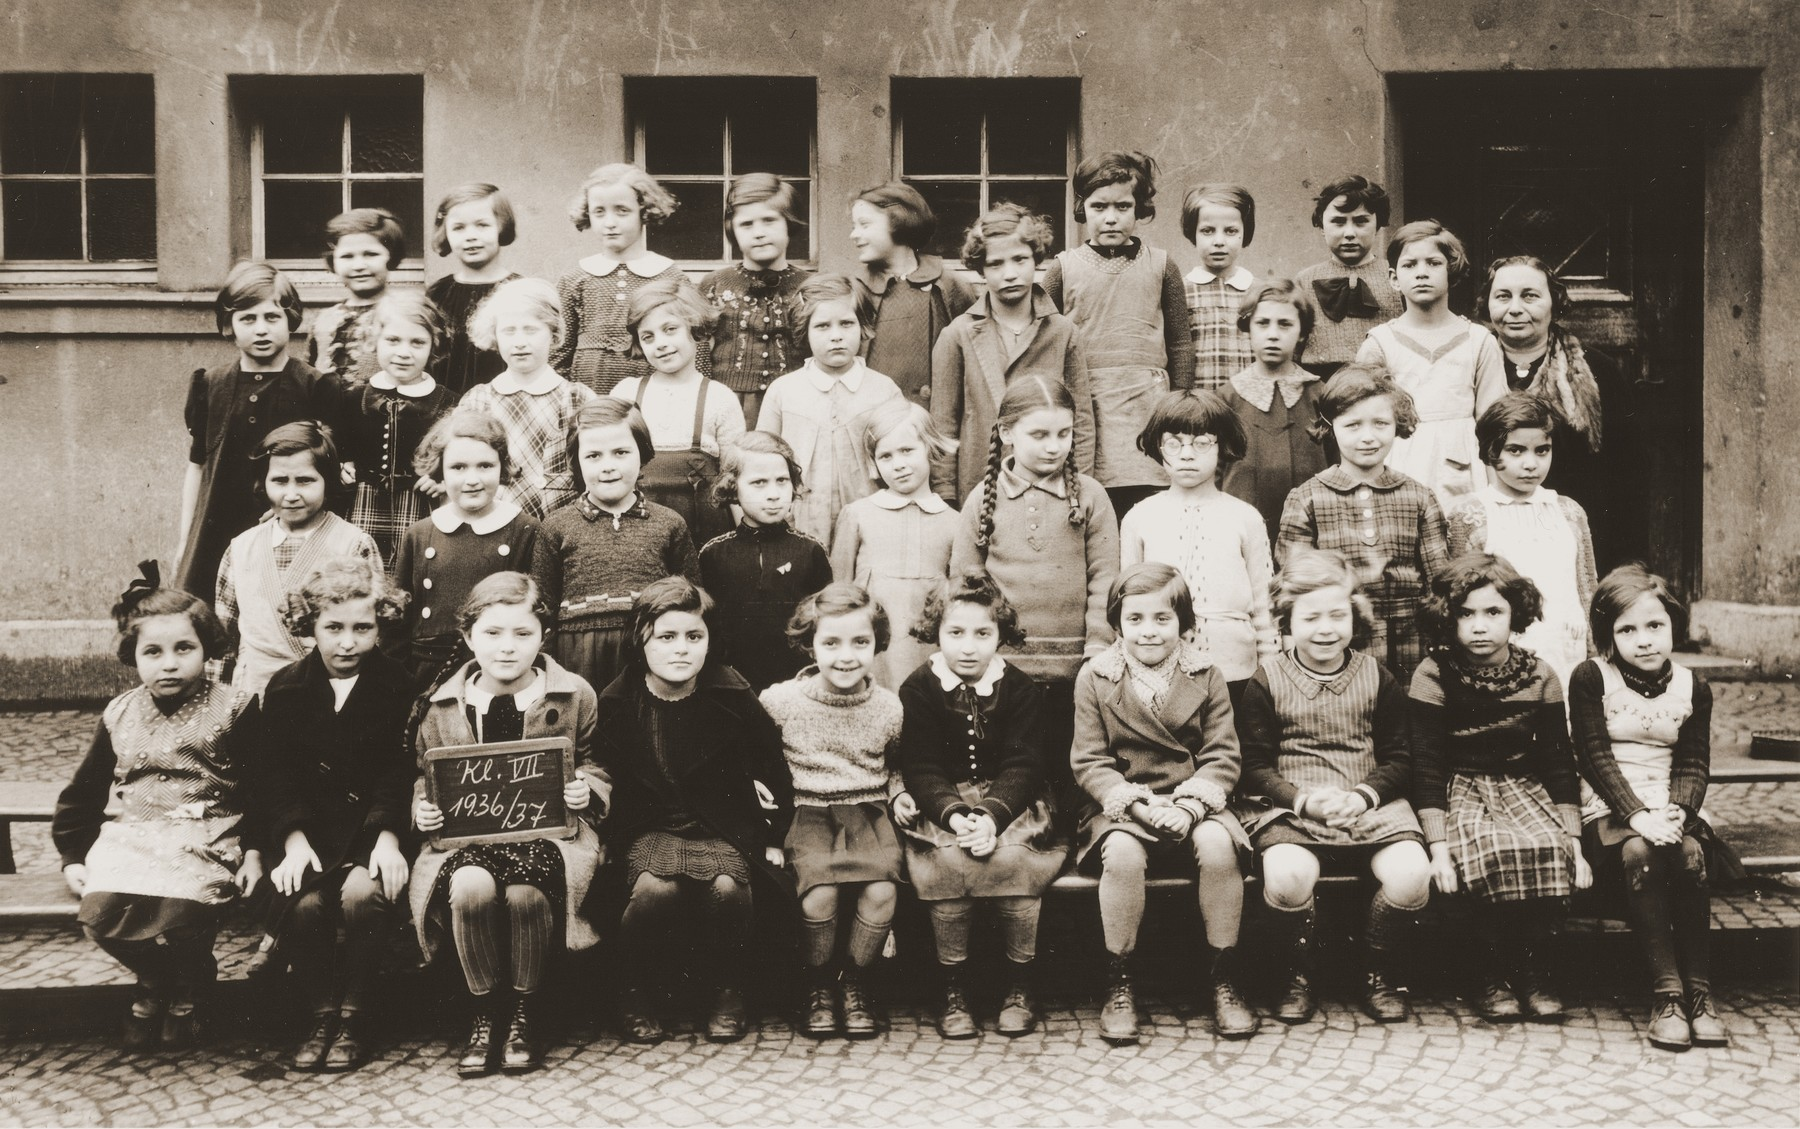 Group portrait of students in the first form at the Jewish primary school on Luetzow street in Cologne.    Among those pictured is Marion Michel (second row, third from the left).